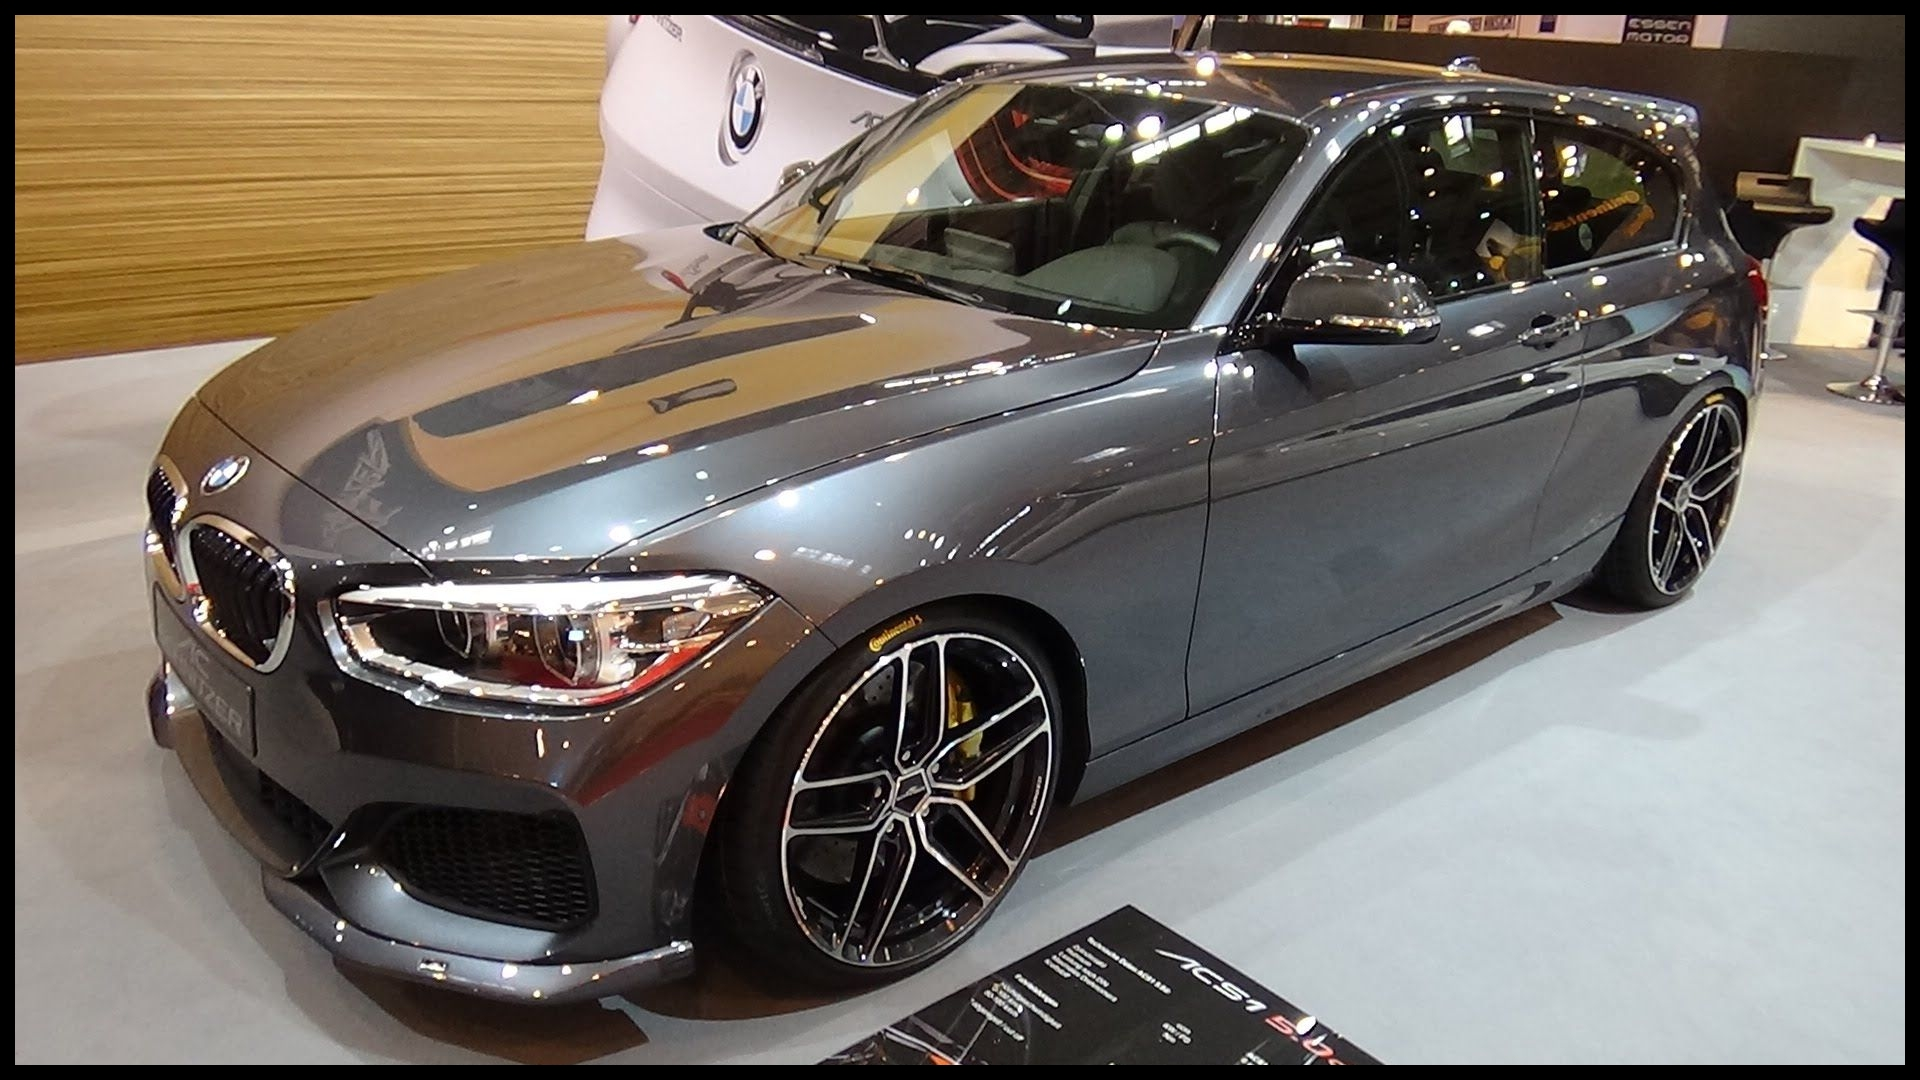 Bmw Sheridan 2016 Bmw Acs1 5 0d by Ac Schnitzer Exterior and Interior Essen